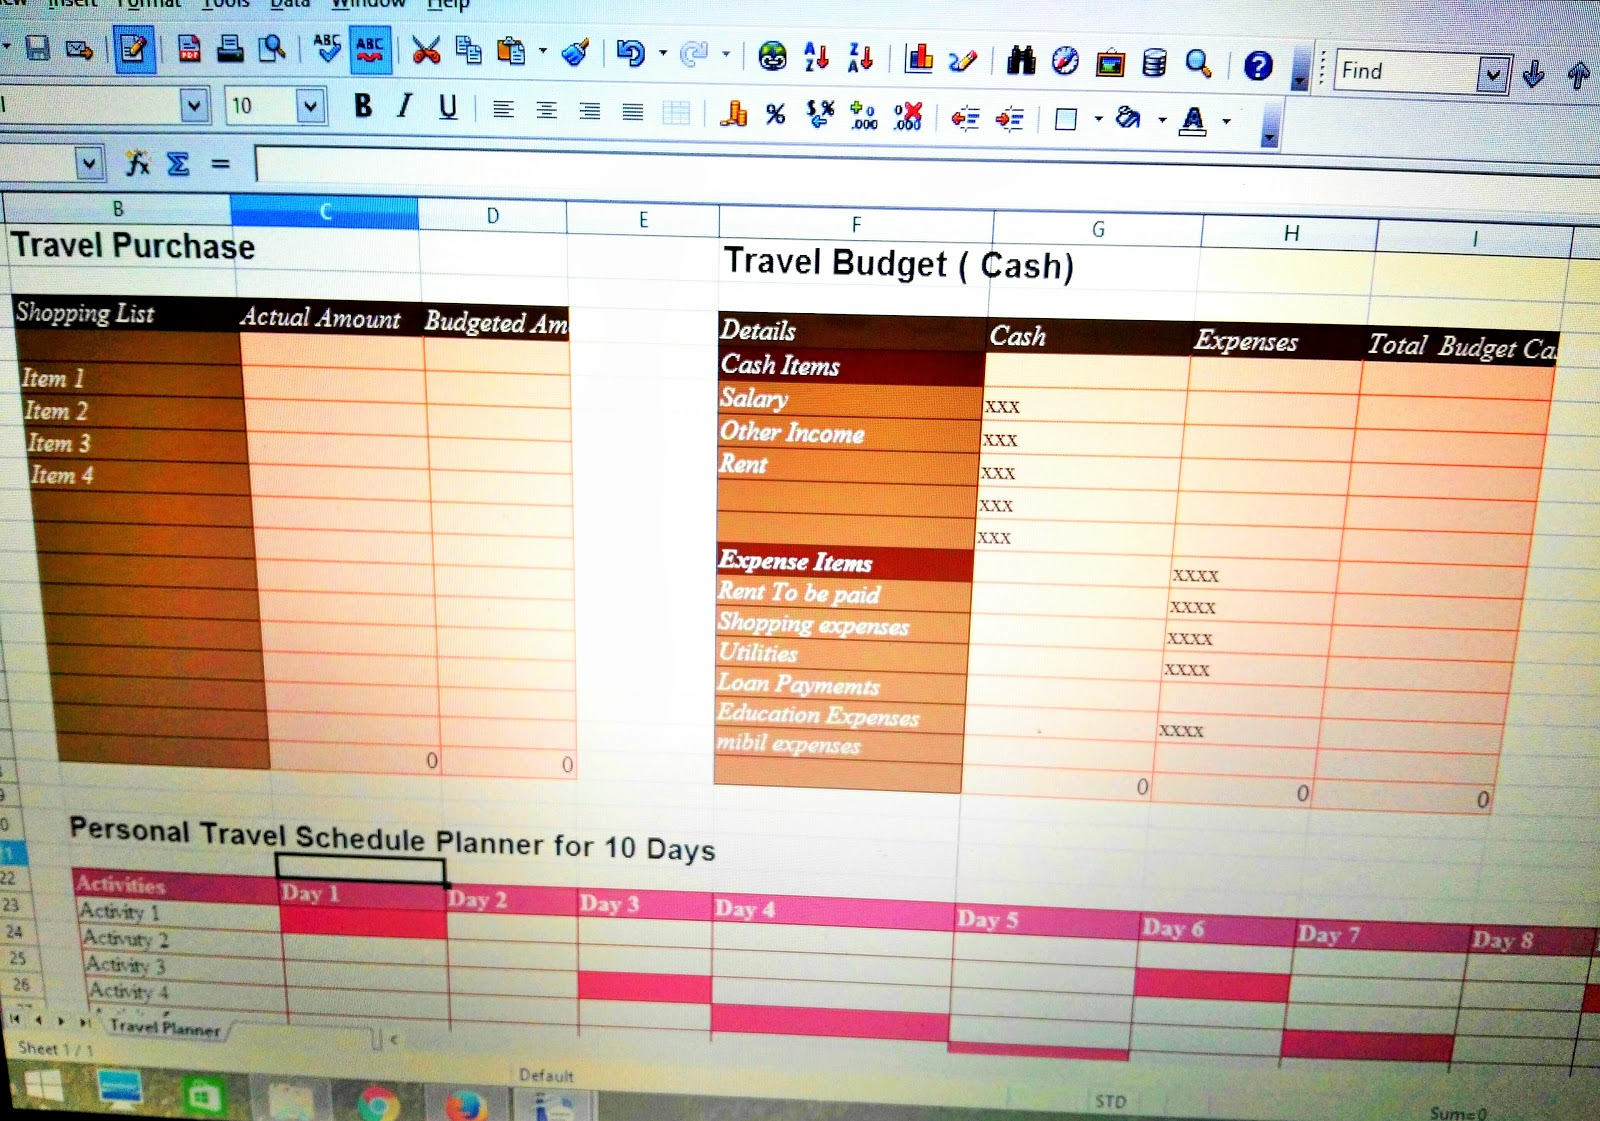 Download Free Travel Planner in Excel Format